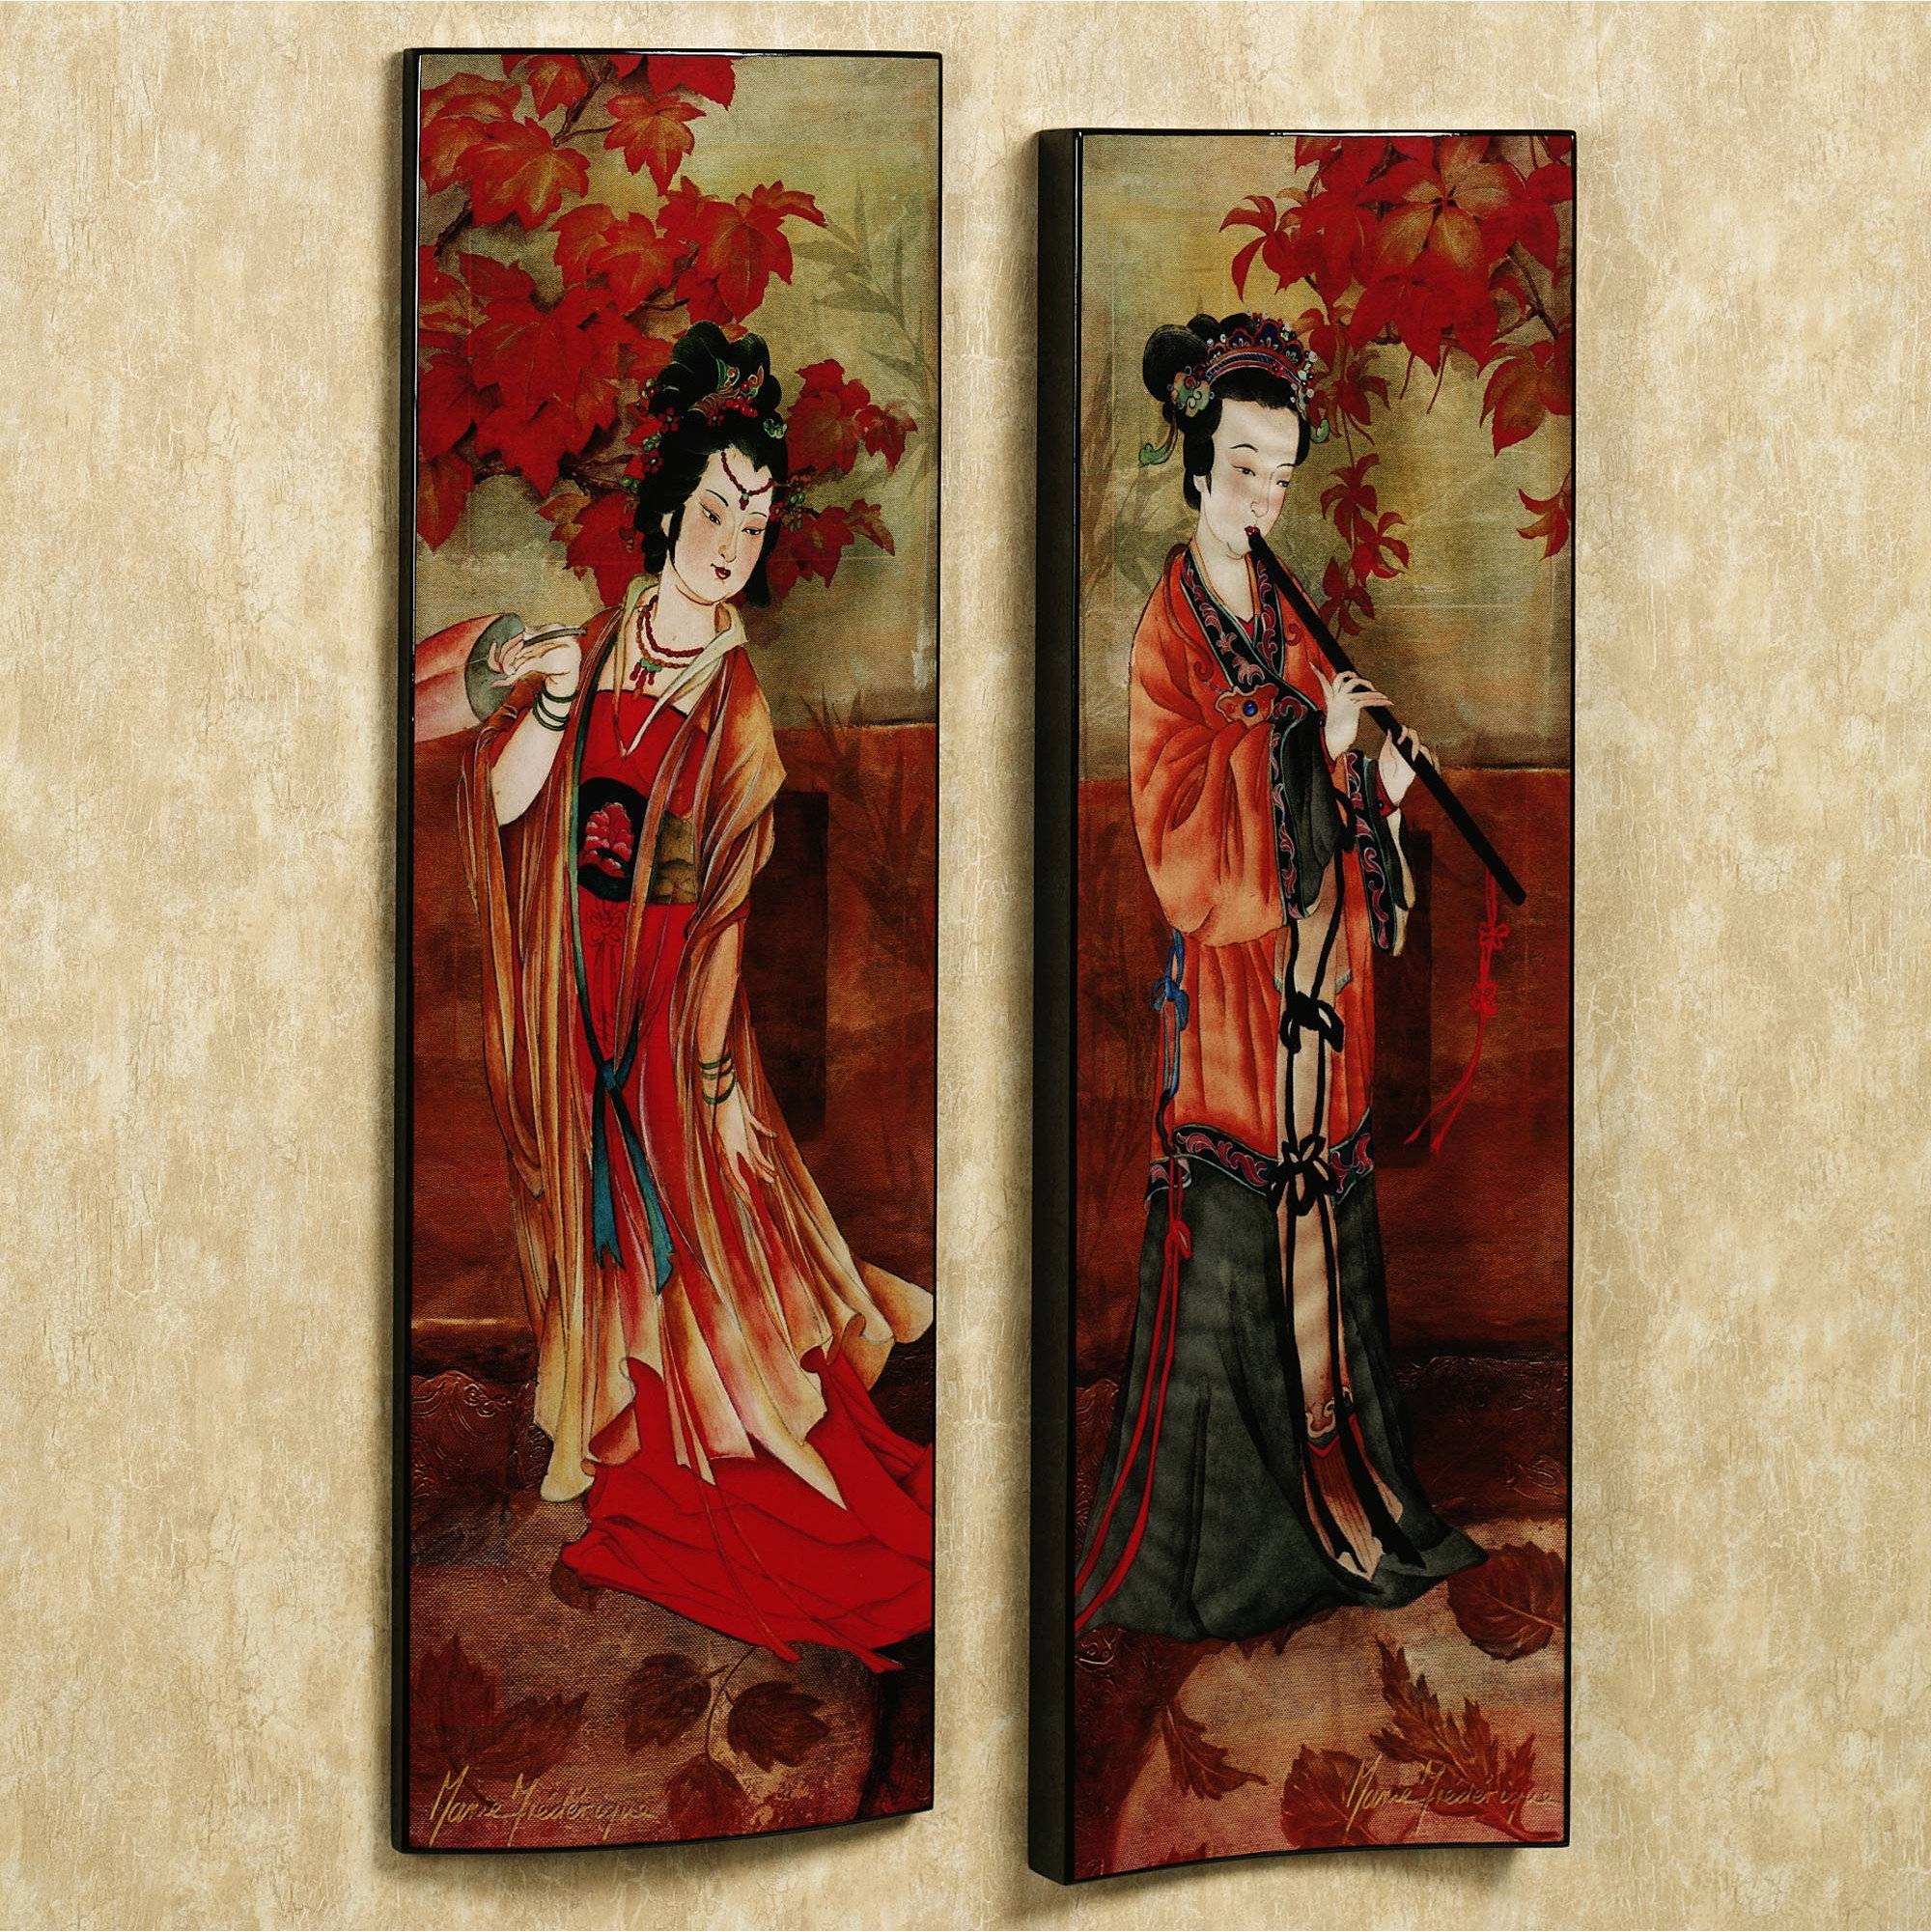 Wall Art Decor: Orange Portrait Geisha Wall Art Position Wooden Throughout Most Recently Released Geisha Canvas Wall Art (View 20 of 20)